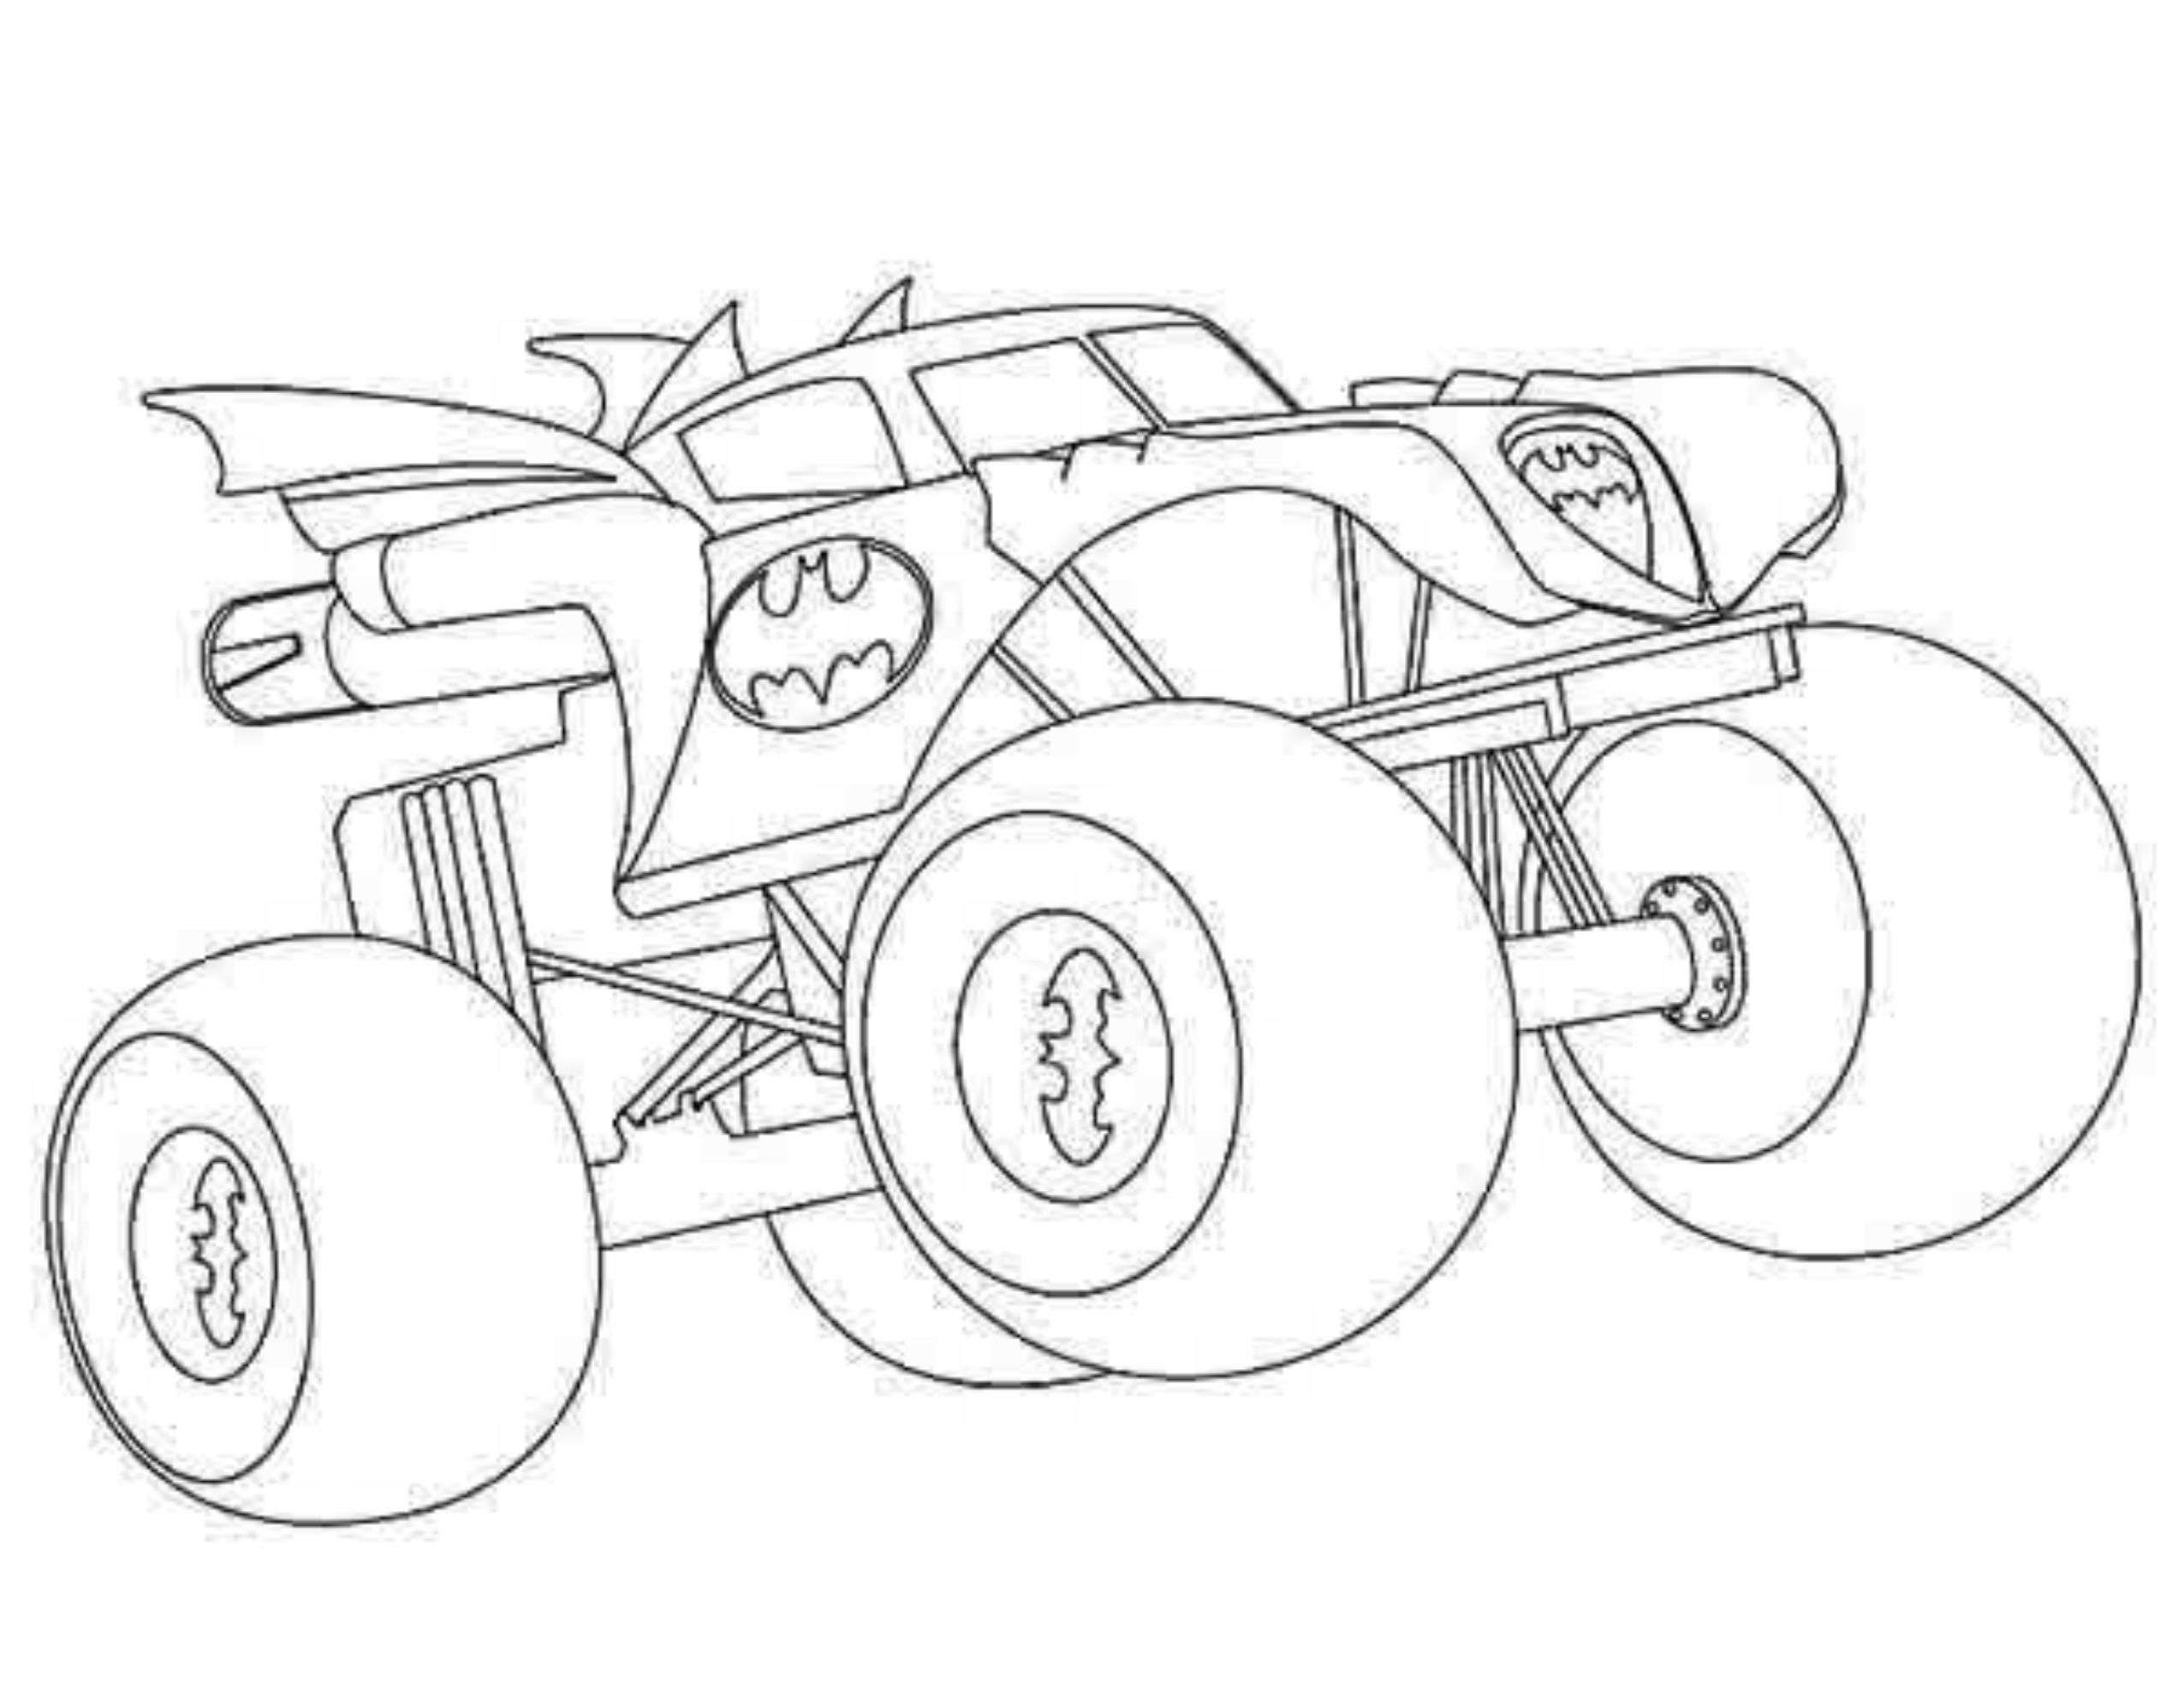 Monster Truck Coloring Pages Magnificent Free Printable Monster Truck Coloring Pages For Kids .